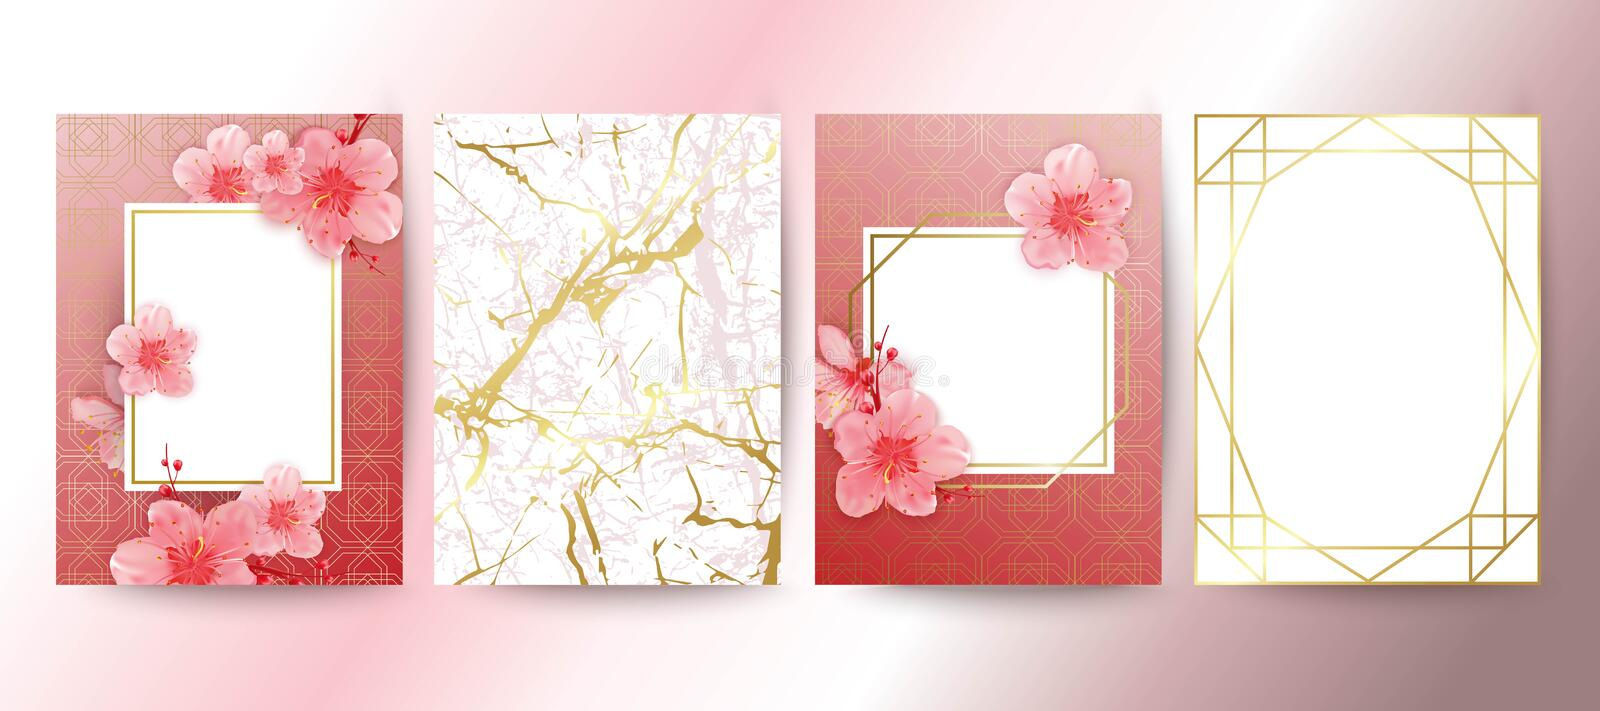 Card with cherry blossoms. Geometric frame. White and gold marble texture. Sakura flowers. Wedding invitation design. vector illustration